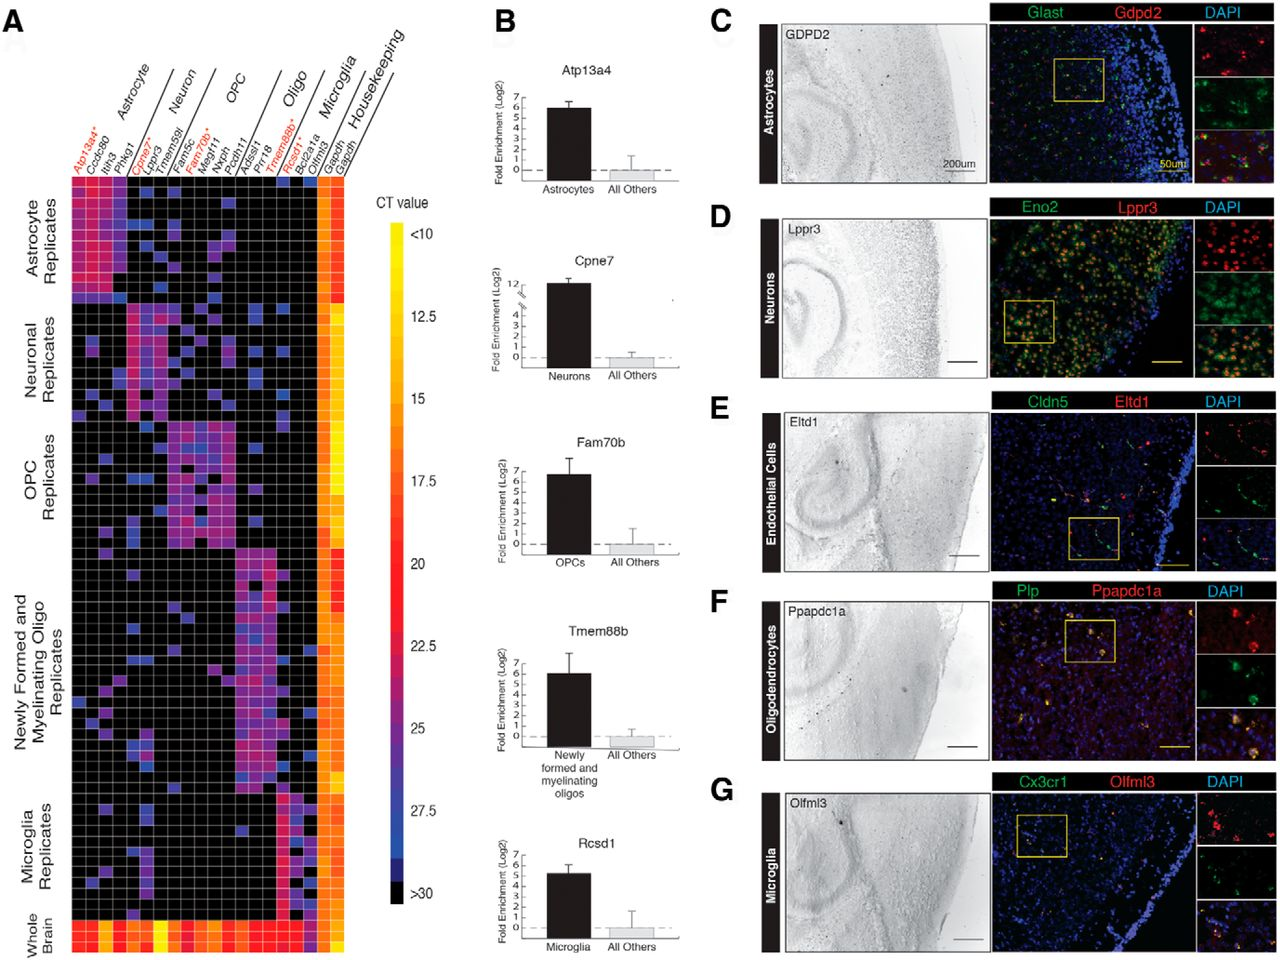 An Rna Sequencing Transcriptome And Splicing Database Of Glia Neurons And Vascular Cells Of